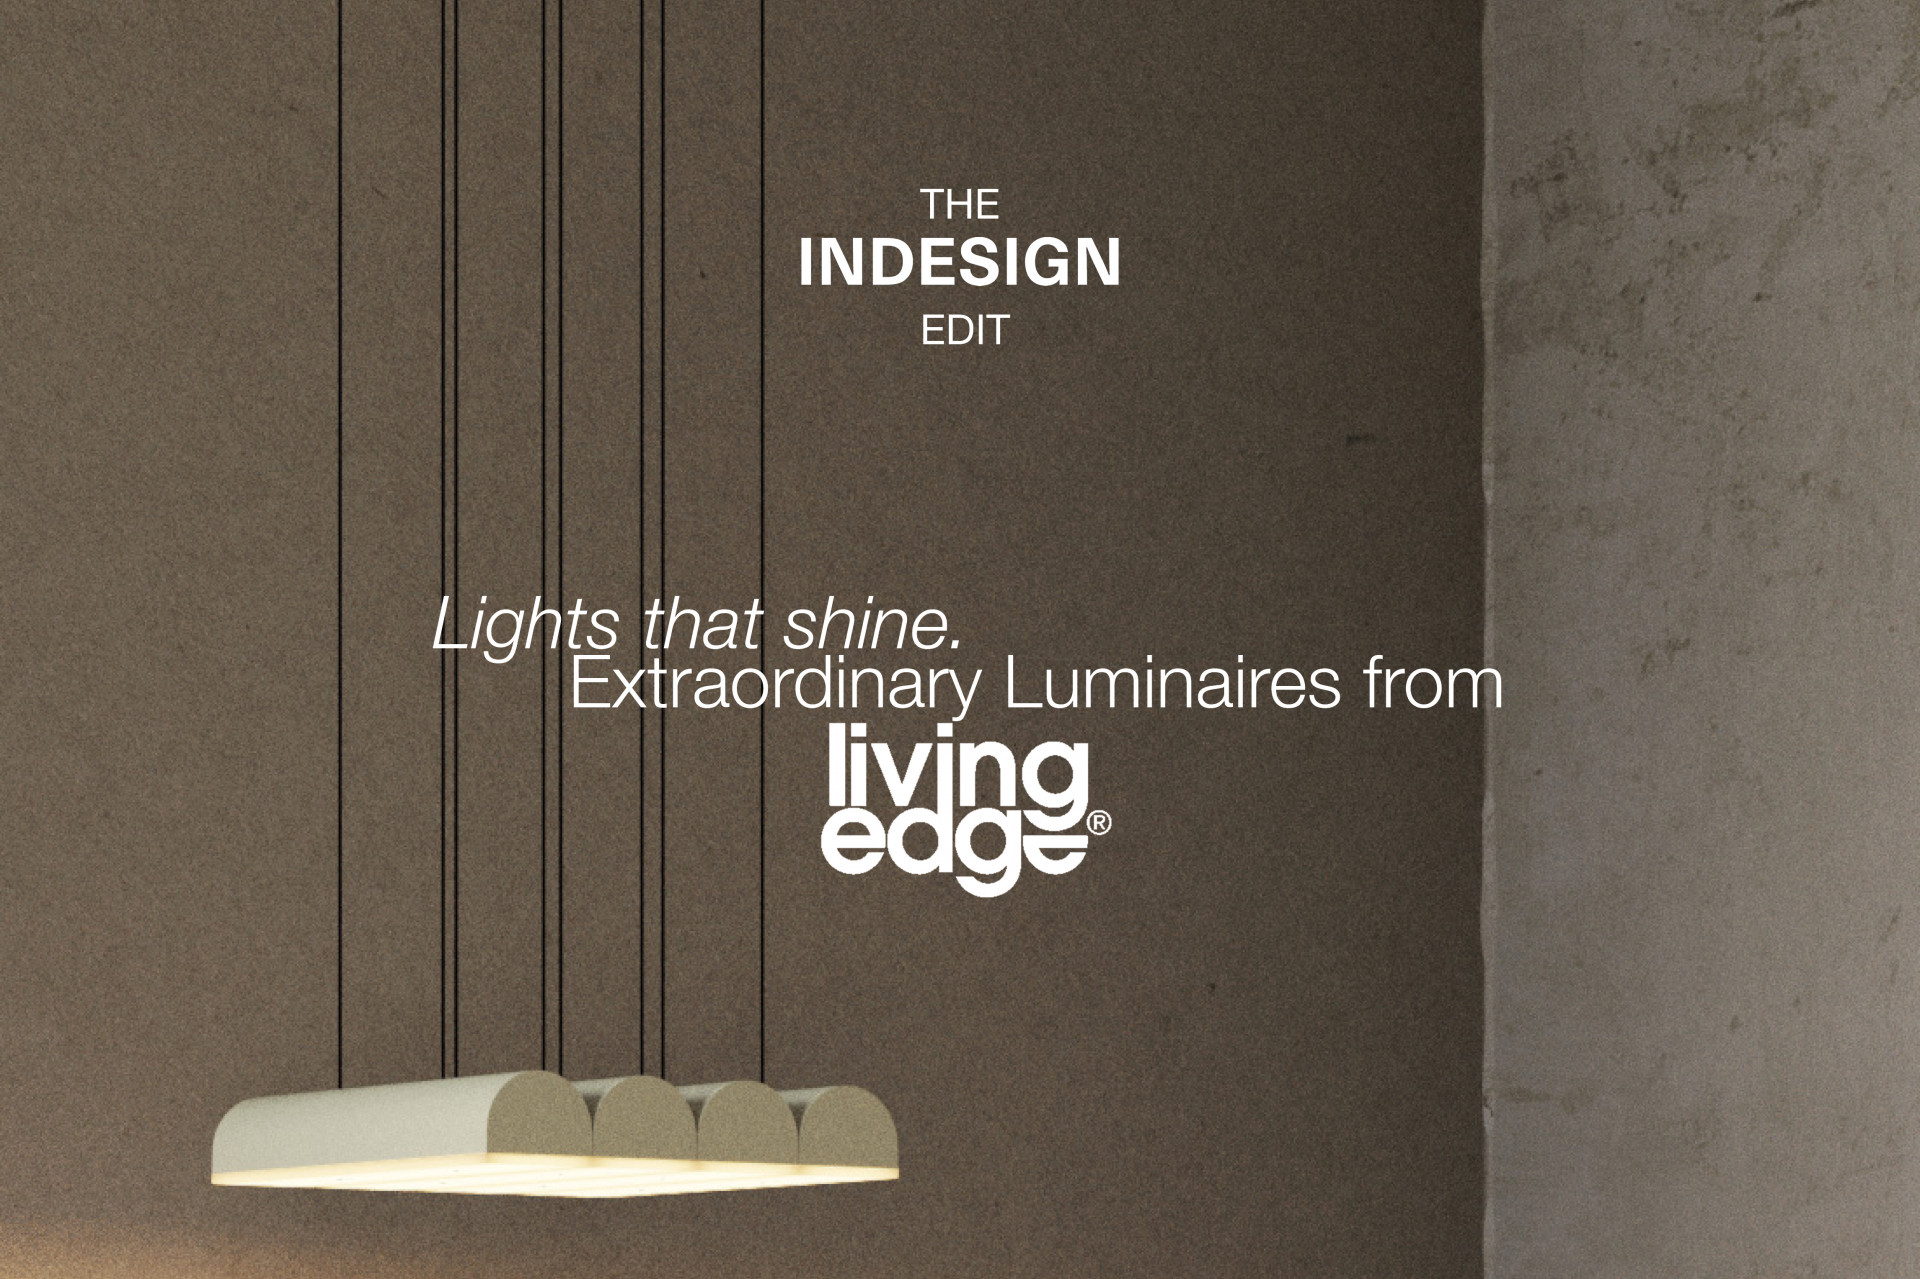 The Indesign Edit: Lights that shine from Living Edge